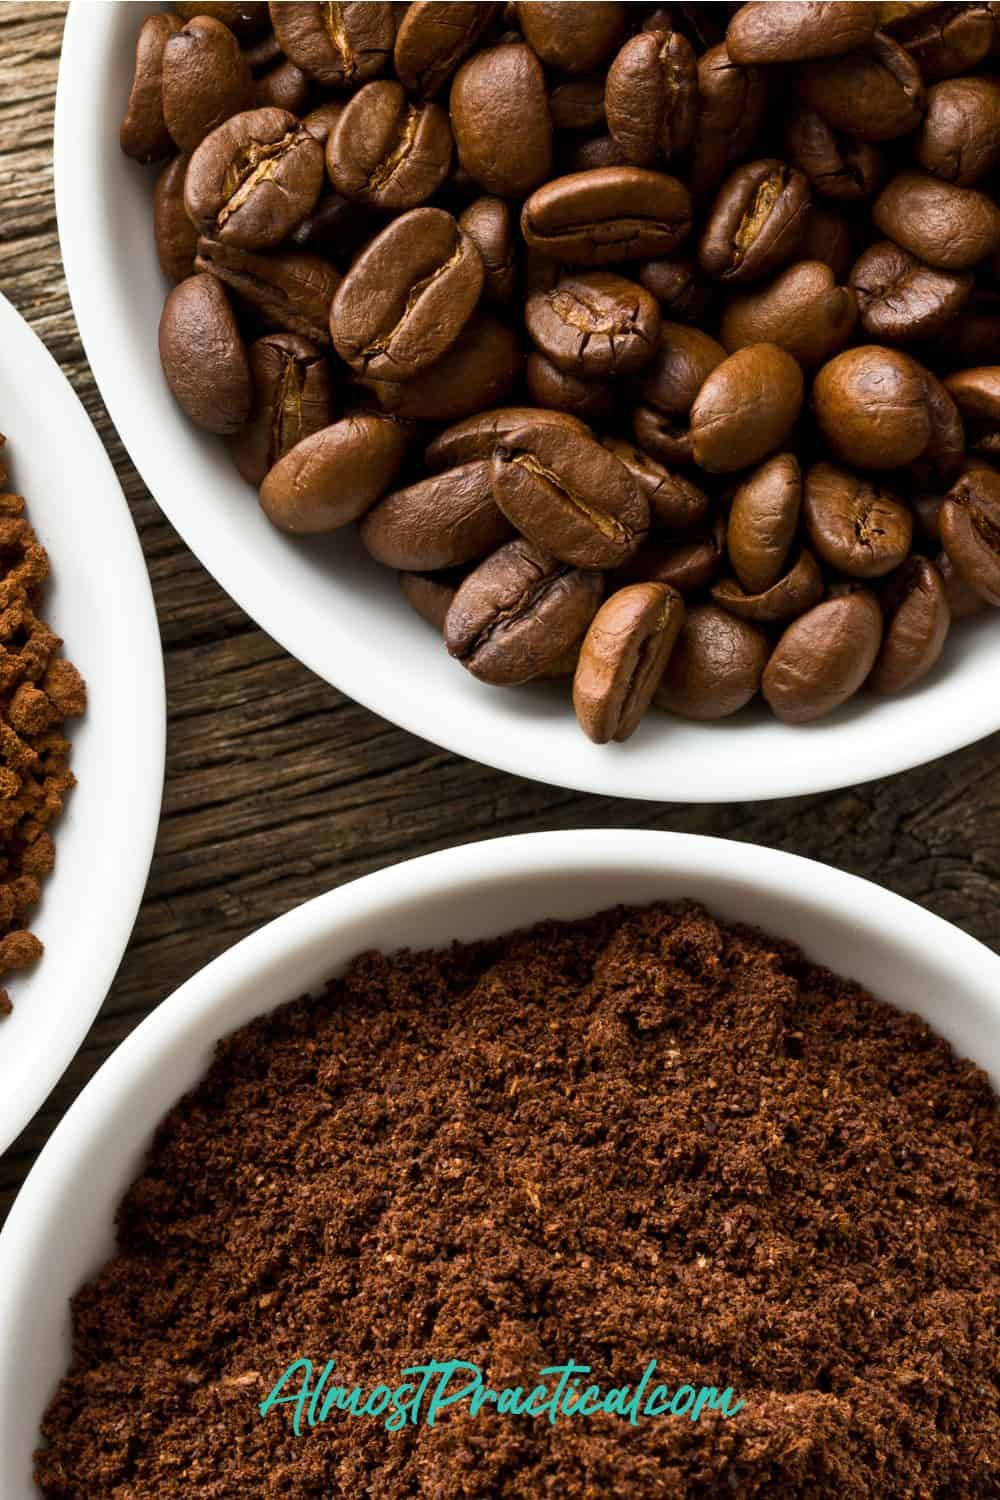 How to Make Whole Bean Coffee (With images) Beans, Food